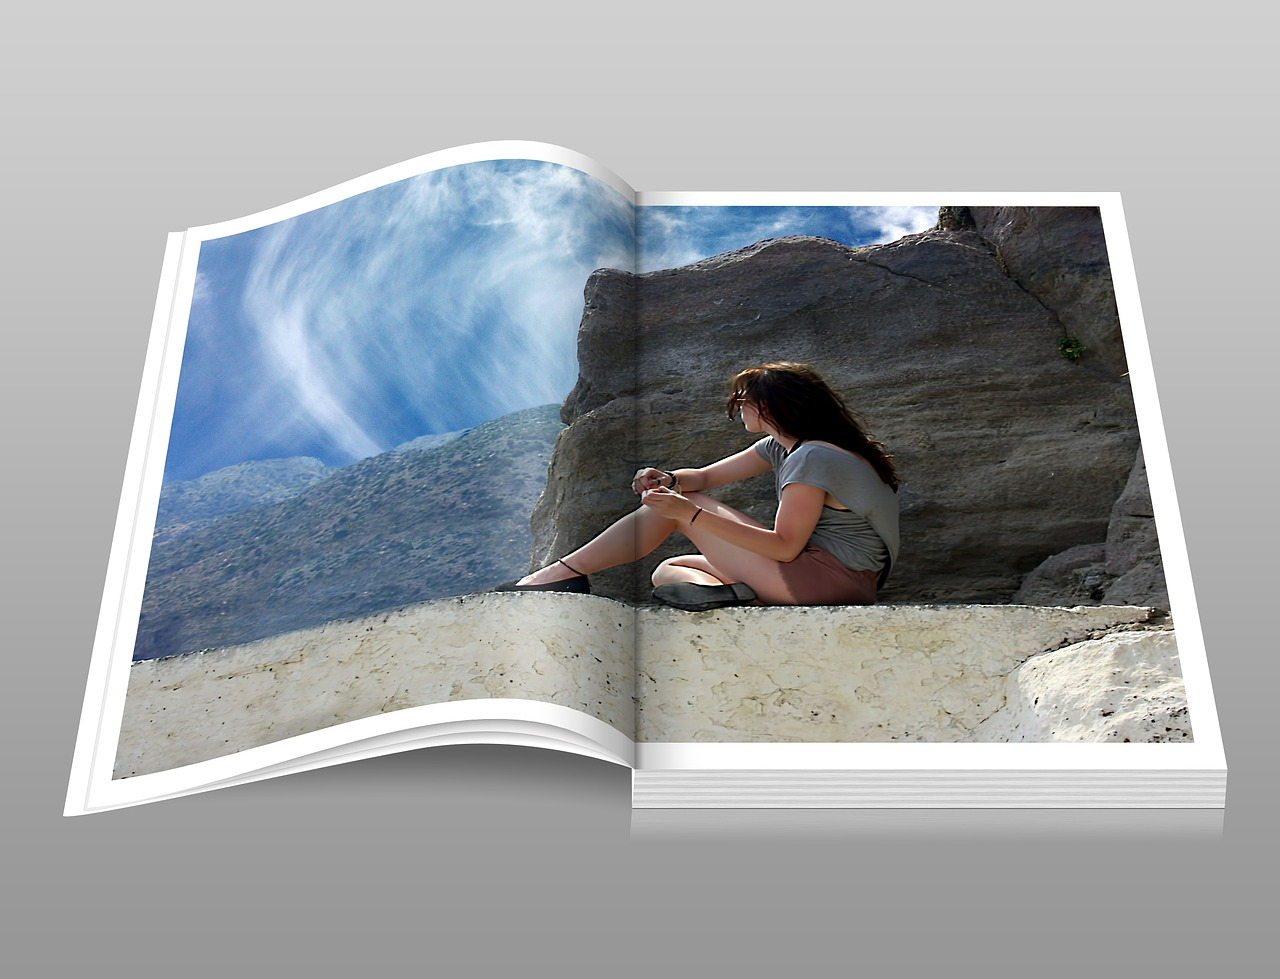 Best Photobook Apps